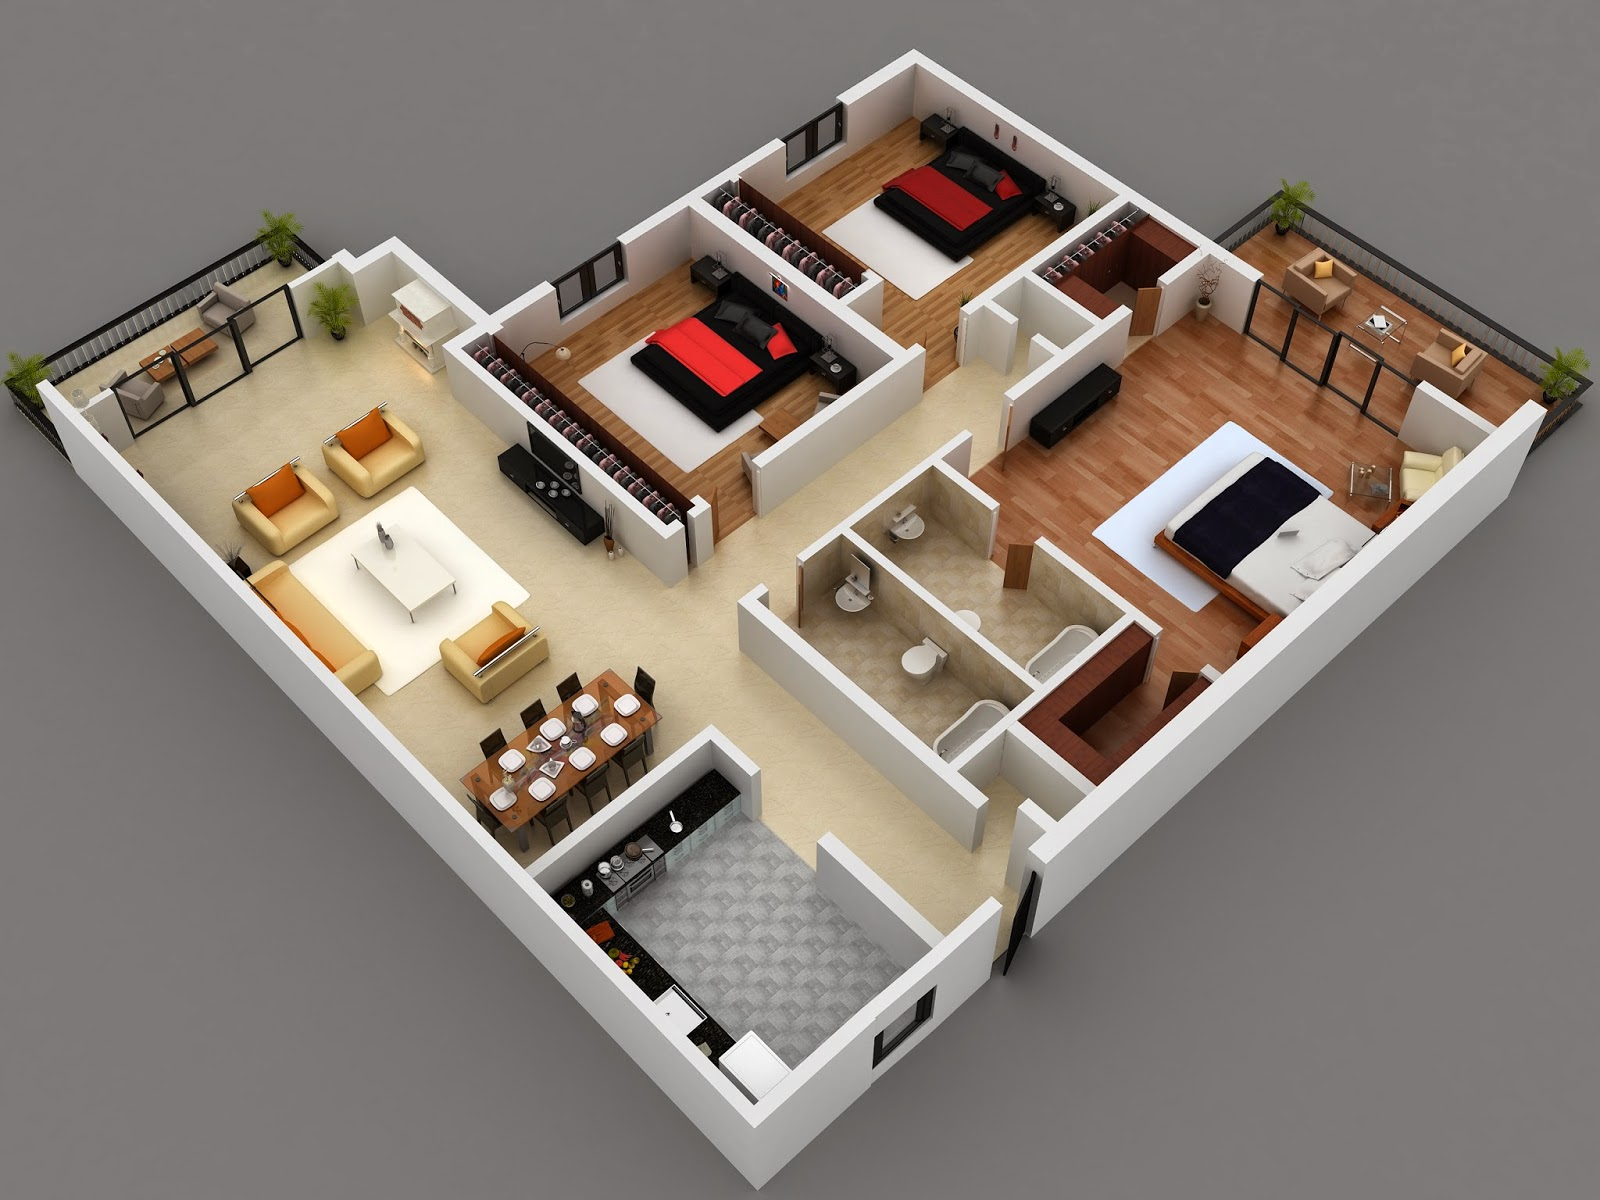 This is how a designer can have an effective floor plan for houses